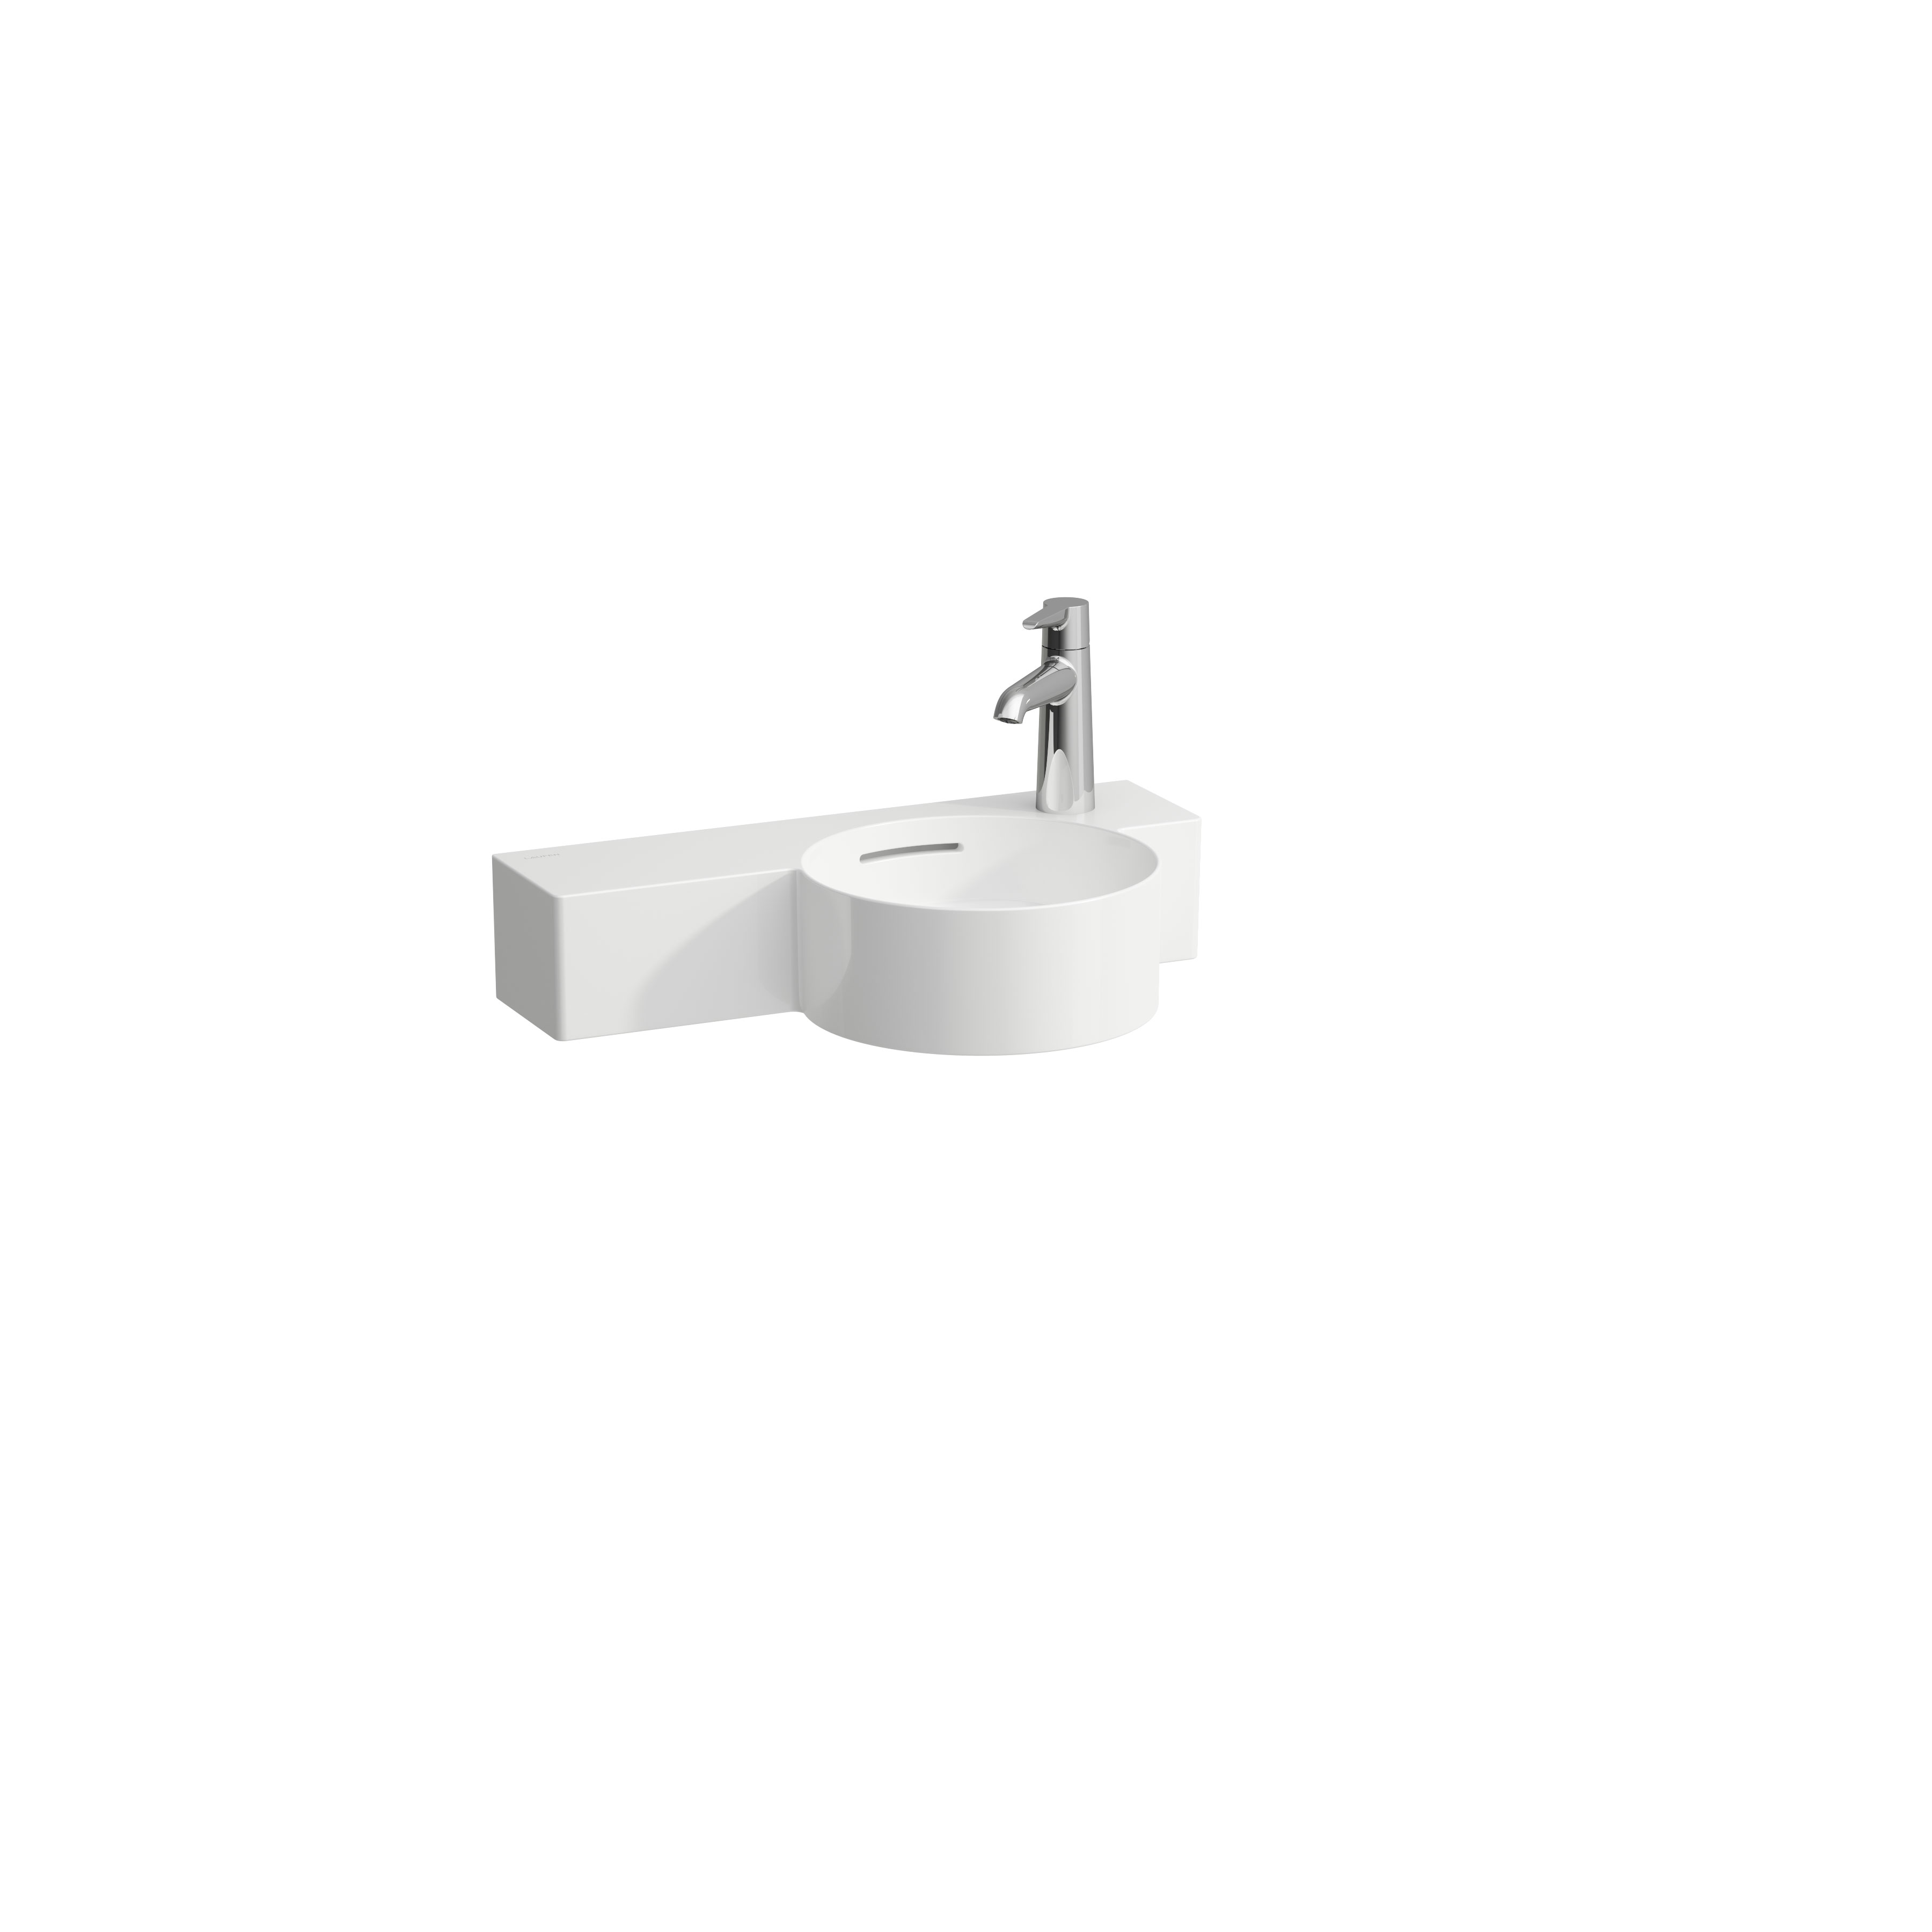 click on Small Round Basin with Shelf - Left image to enlarge